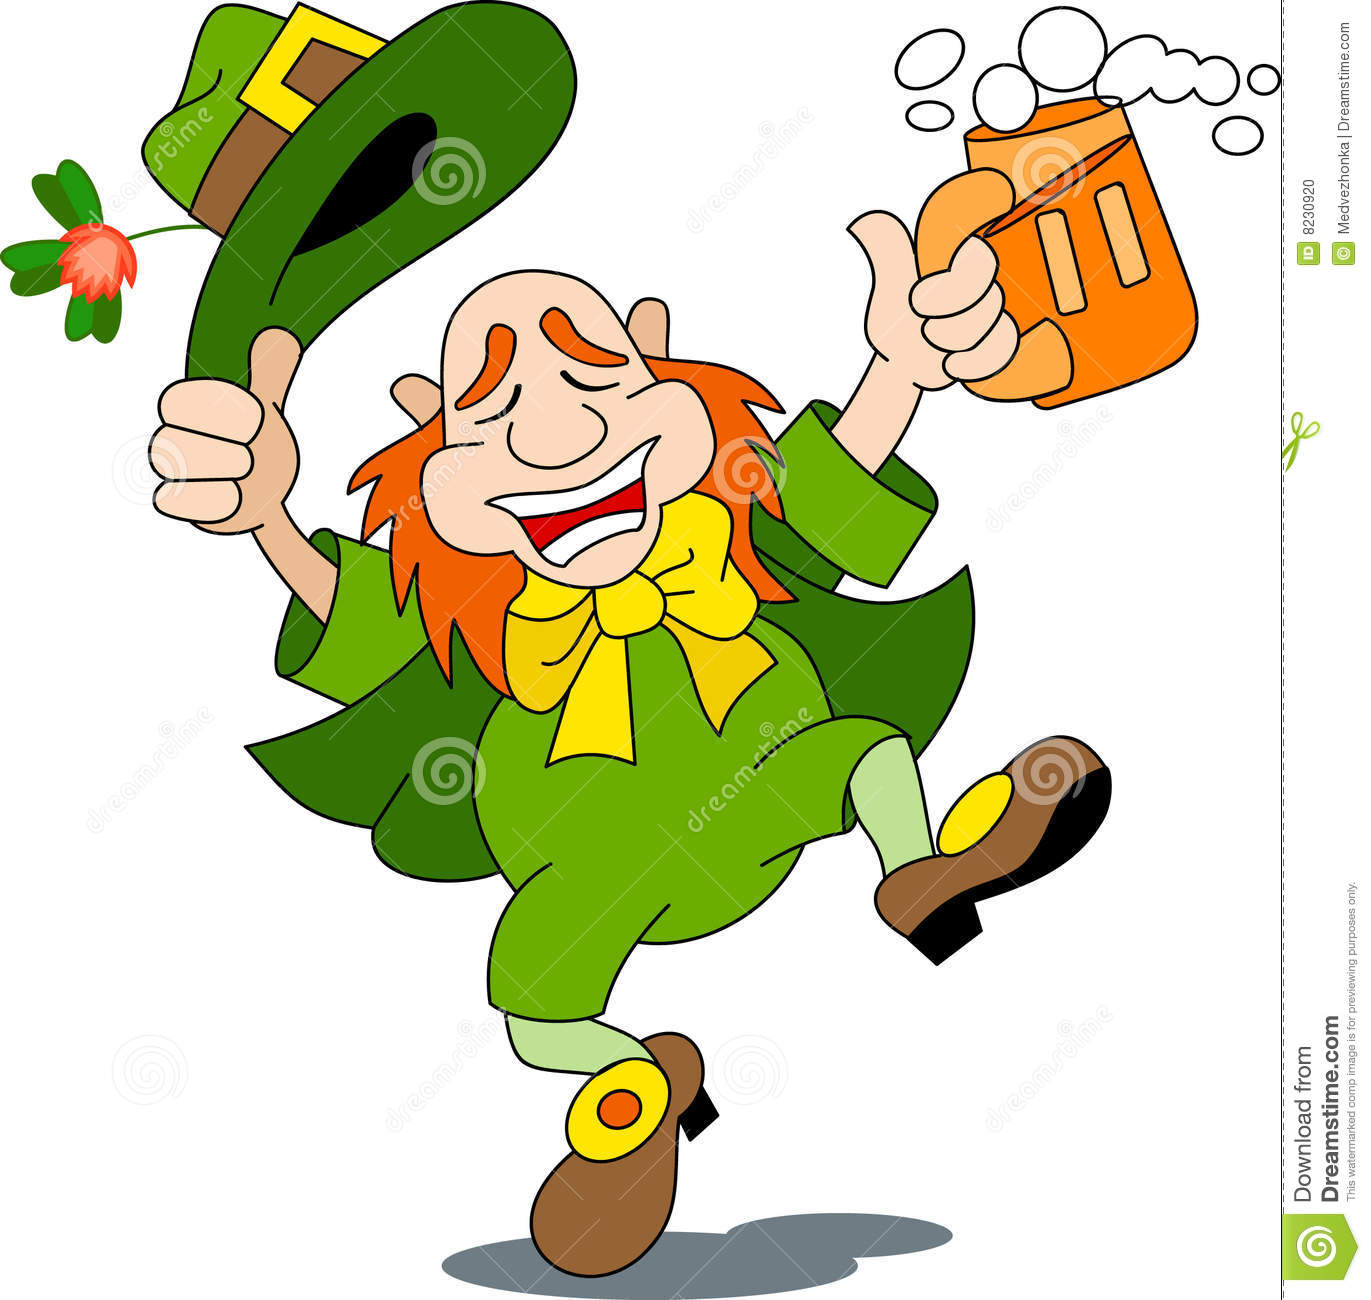 leprechaun is dancing with beer. Vector image.